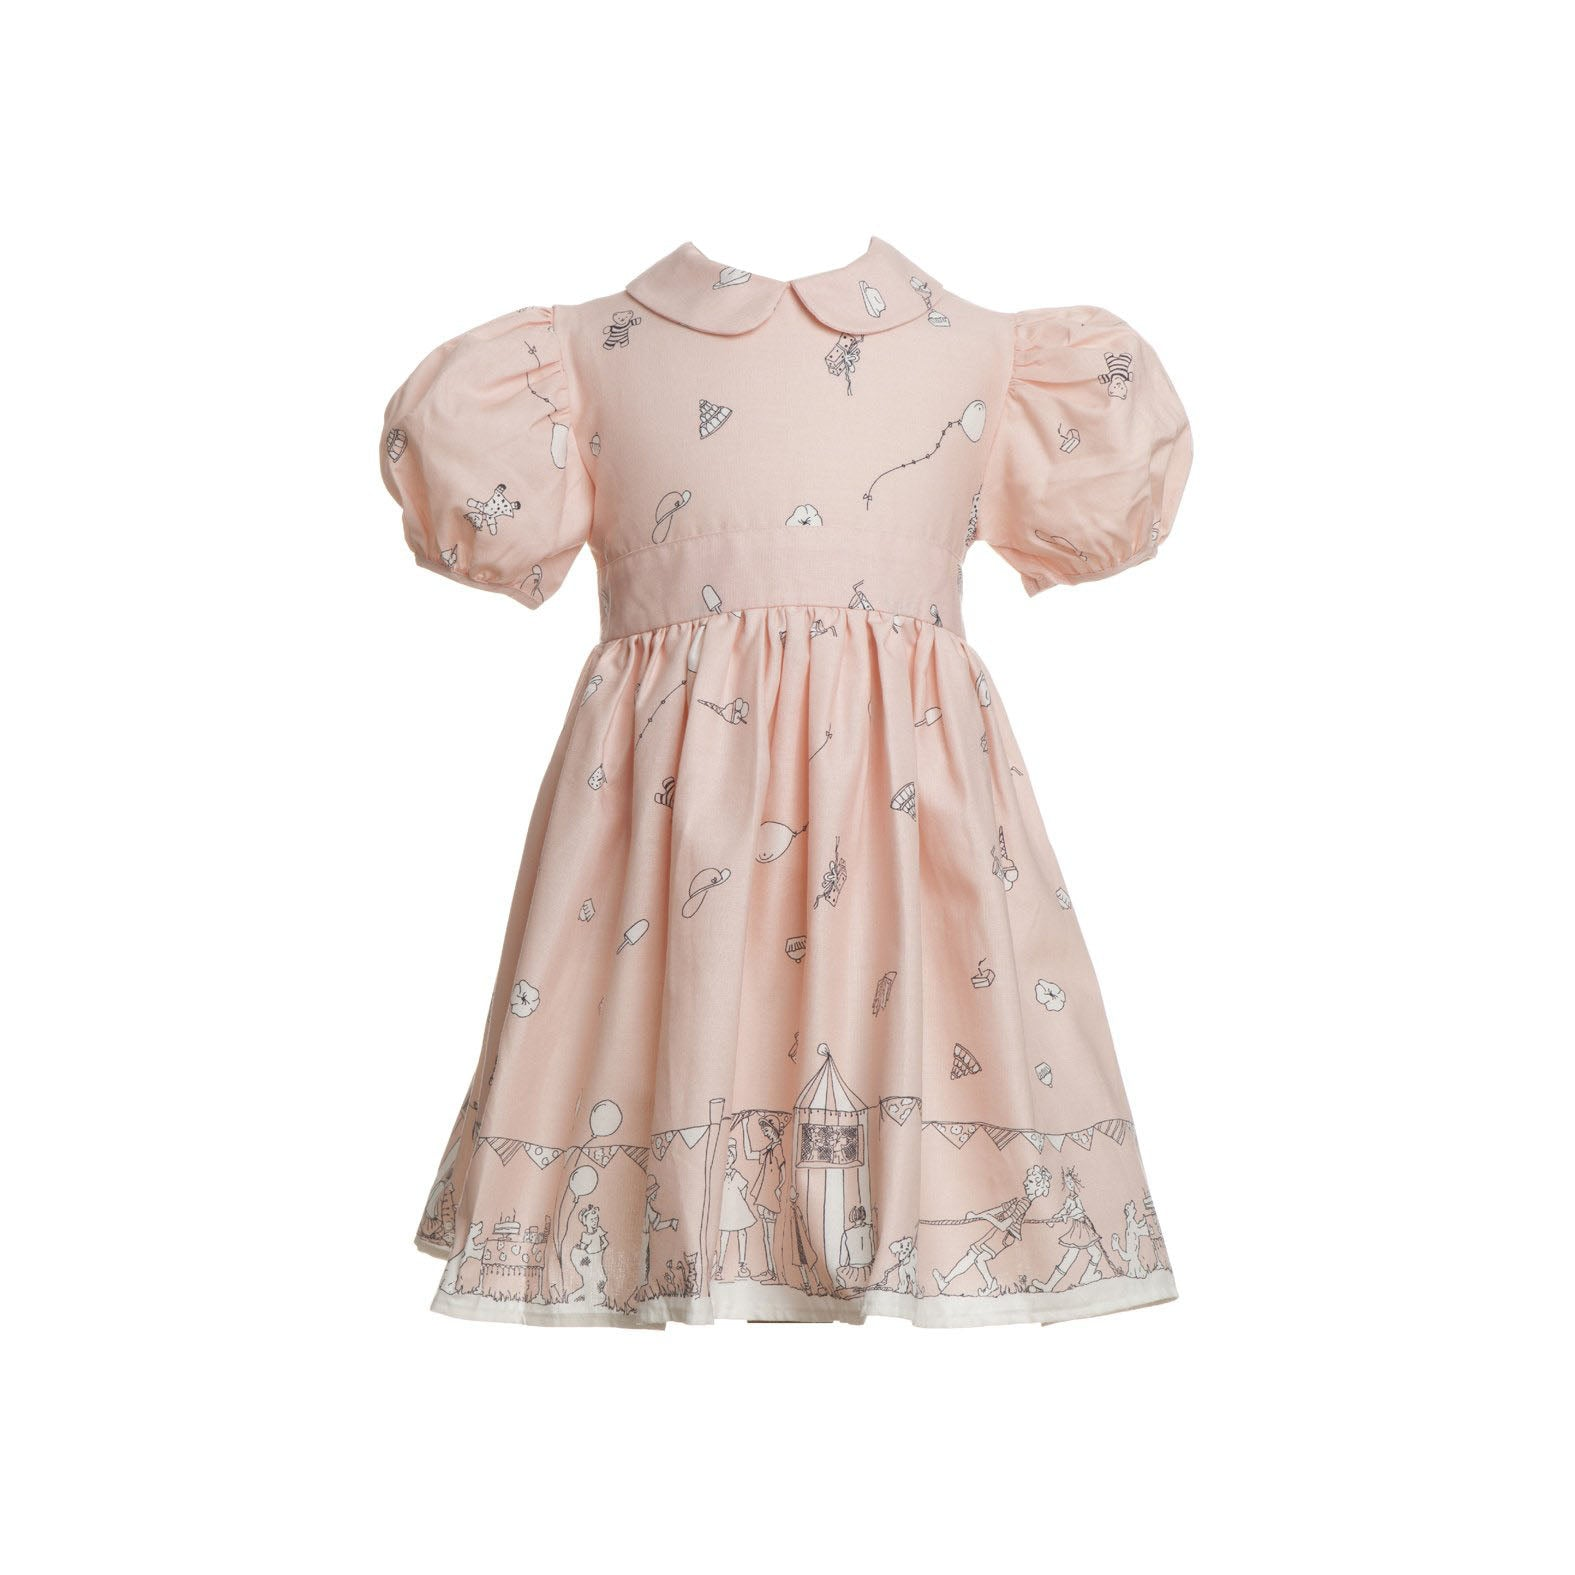 Archive sale - Alice dress - birthday bash pink